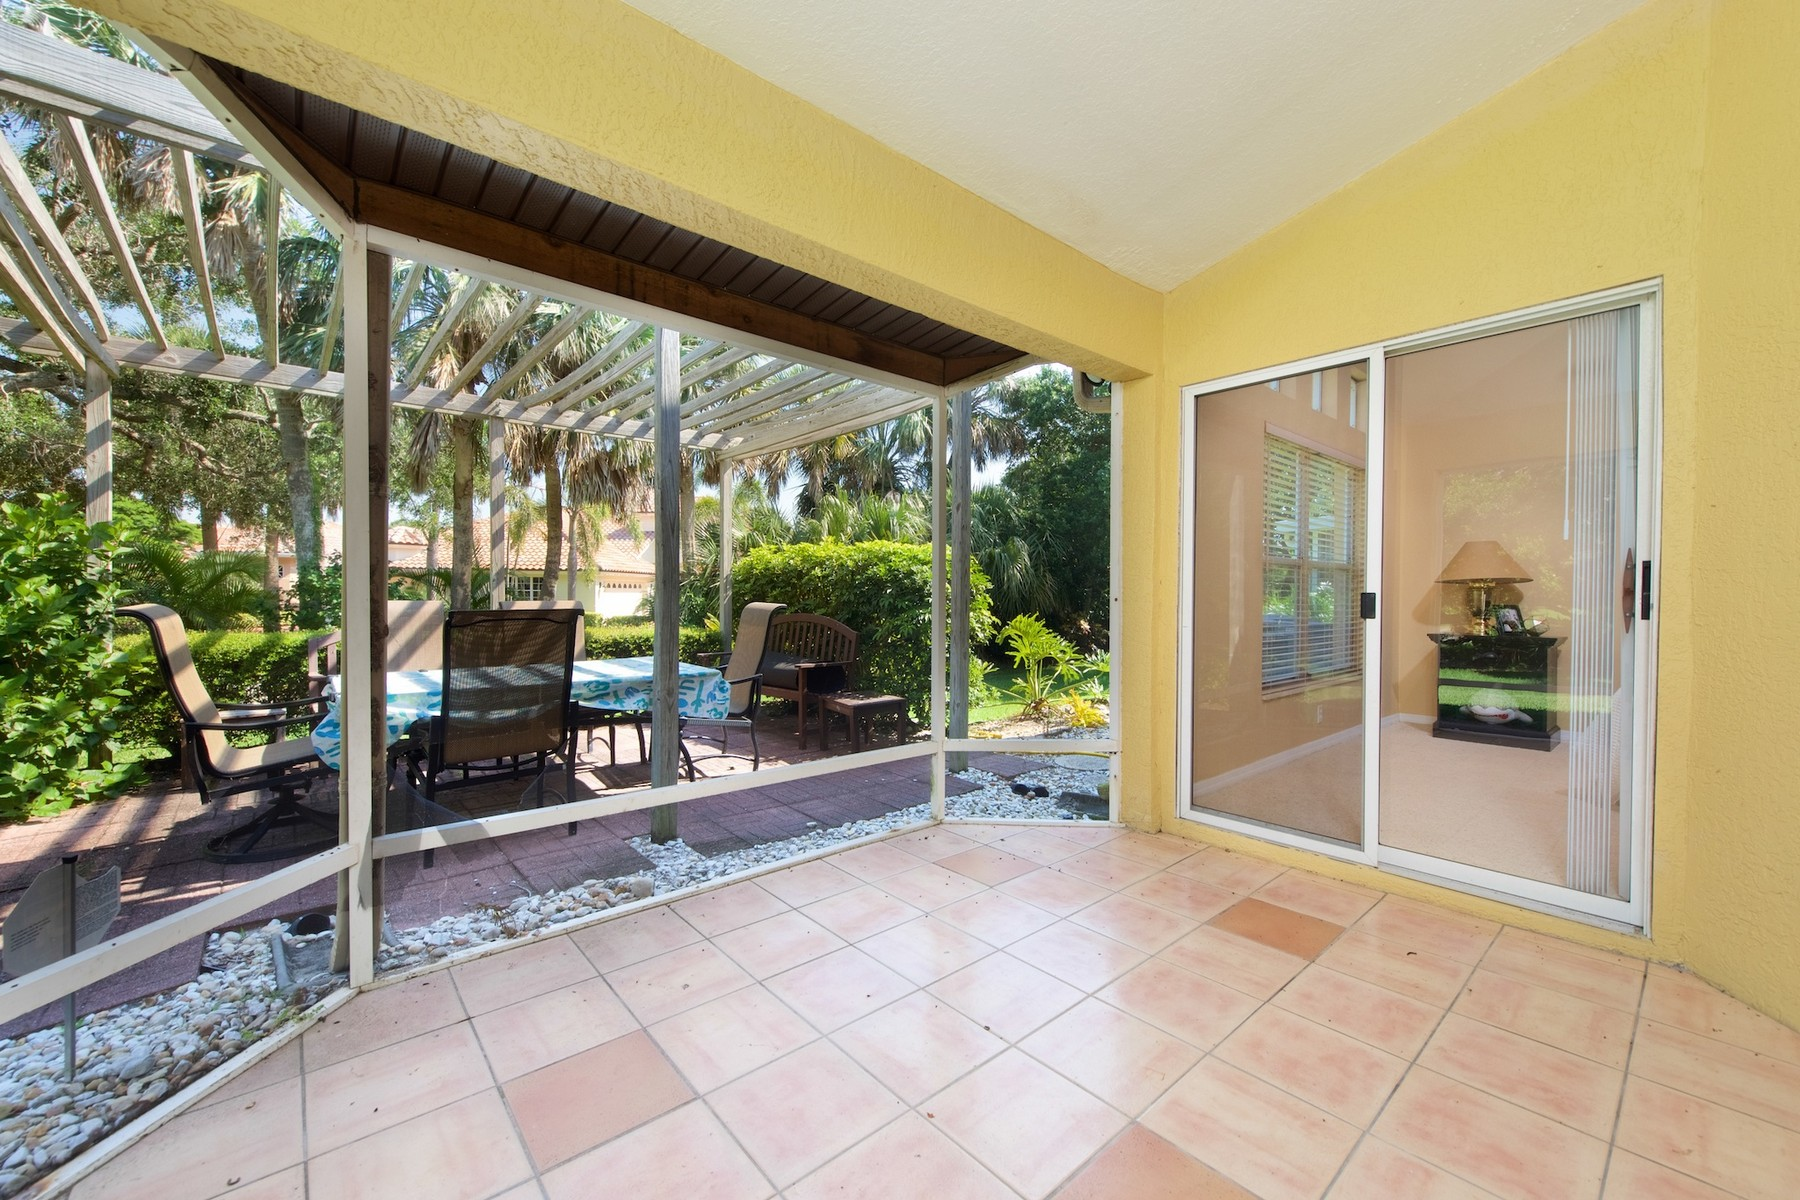 Additional photo for property listing at St. Andrews Village 128 Caledonia Drive Melbourne Beach, Florida 32951 United States